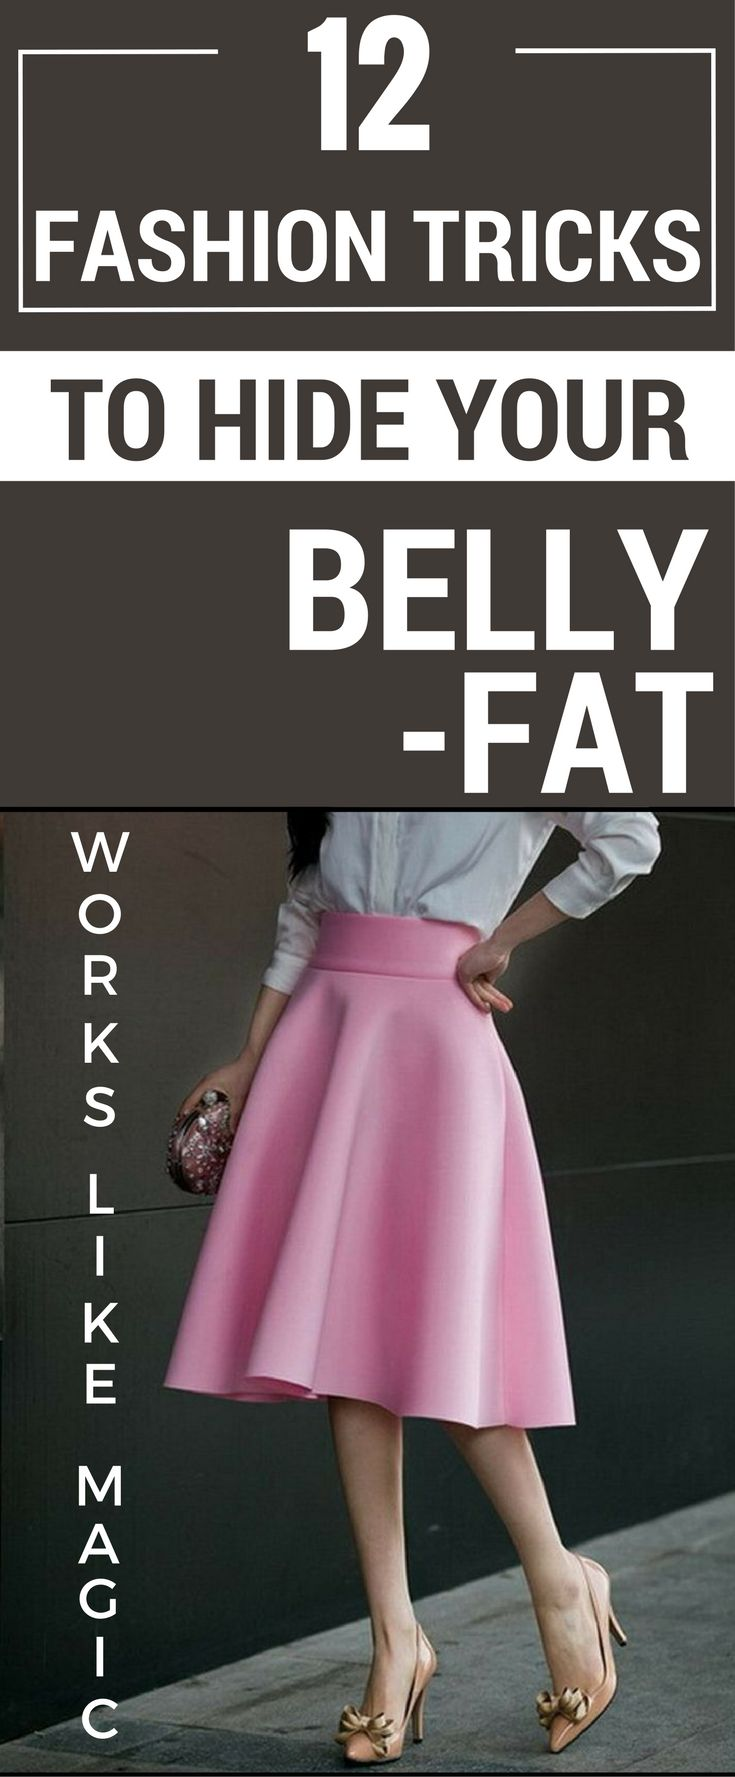 12 Fashion Tricks To Hide Your Belly Fat Chocolate Donuts Big Bowl And Delicious Chocolate